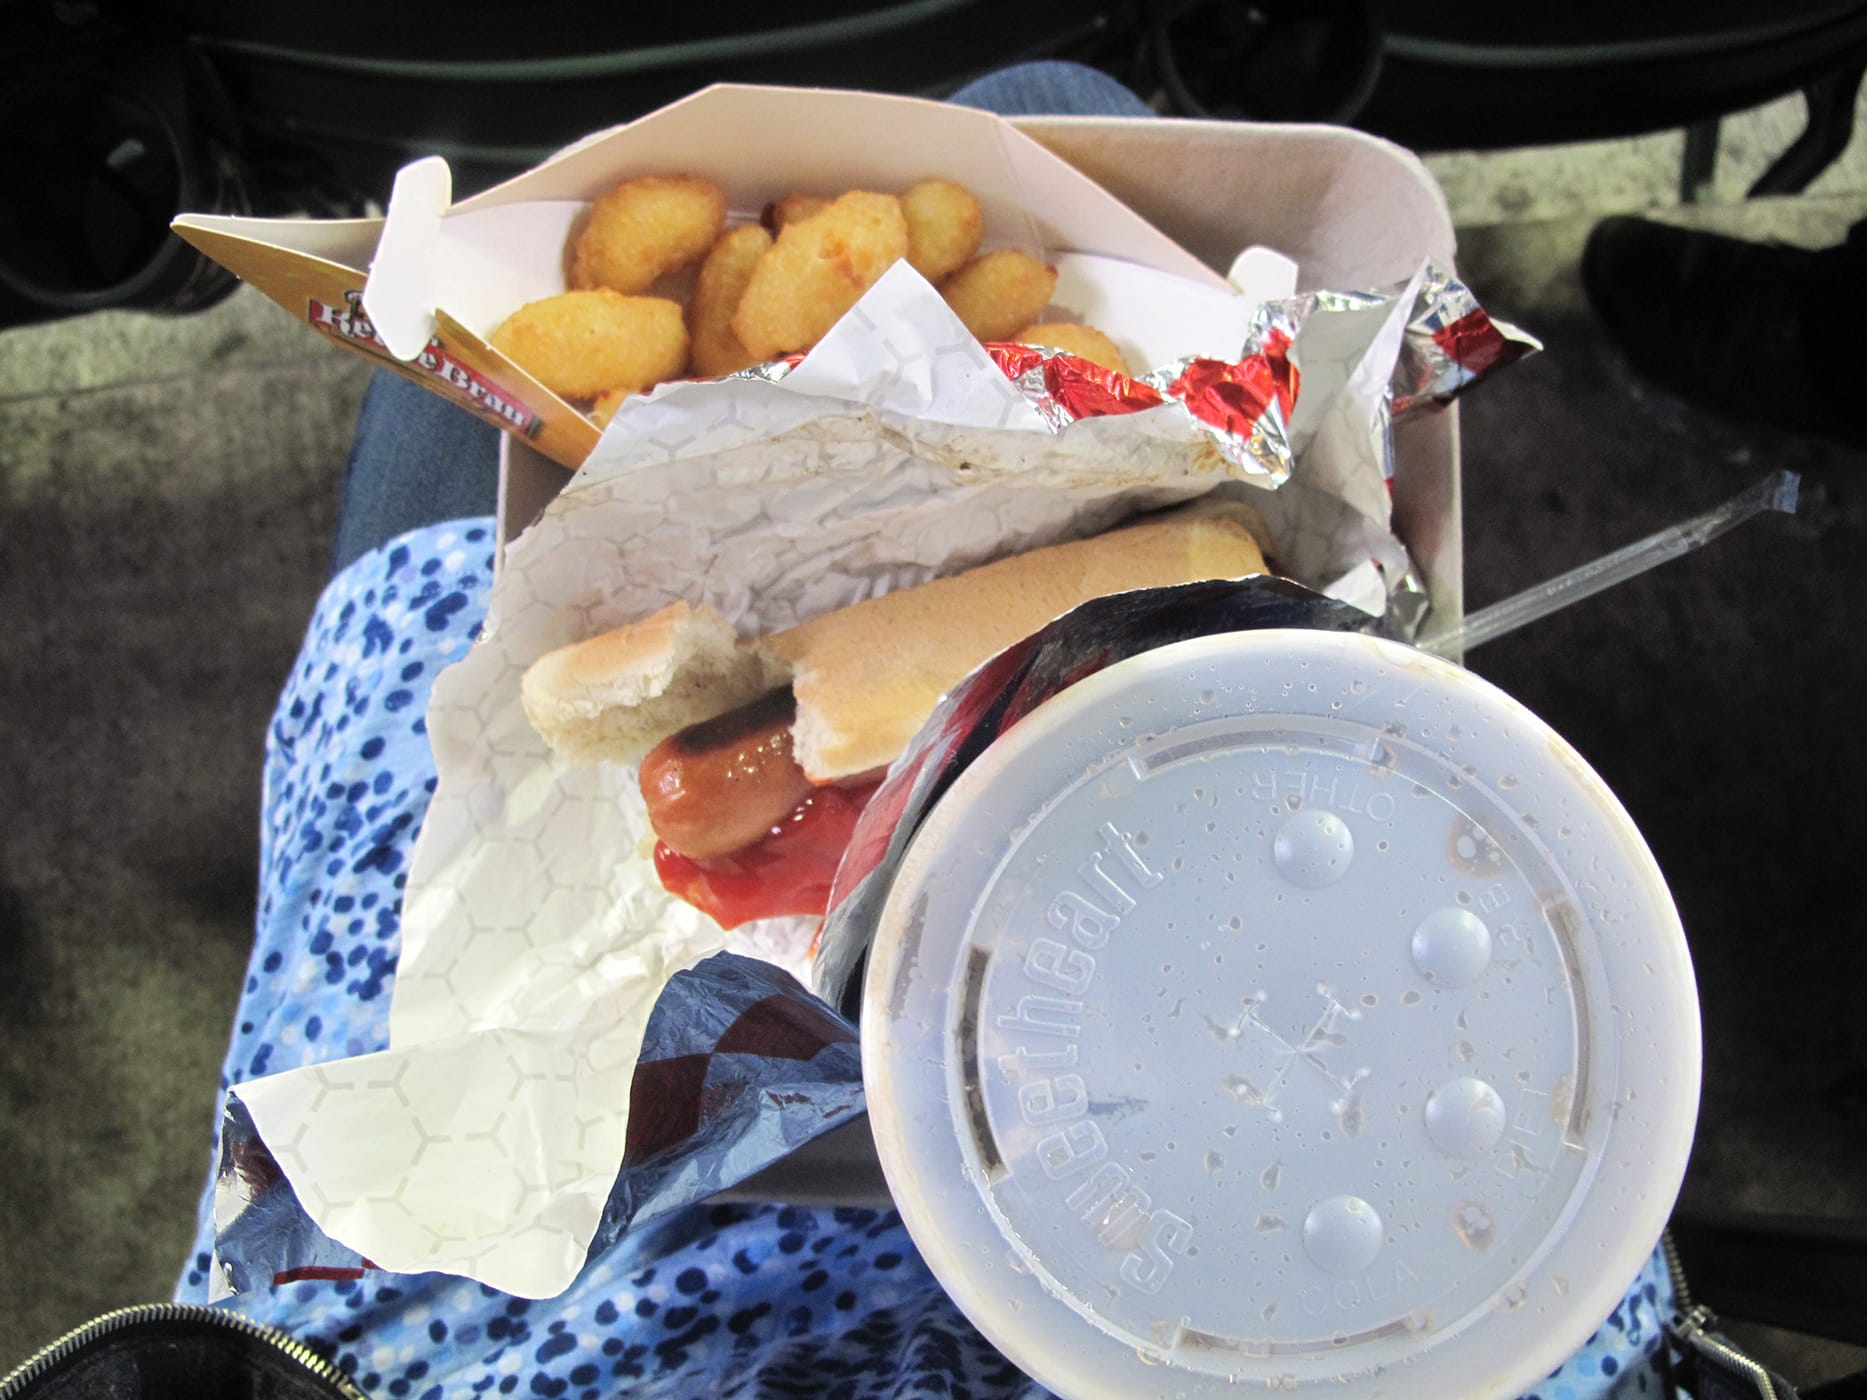 Hot dog and cheese curds at a Brewers game at Miller Park in Milwaukee, Wisconsin